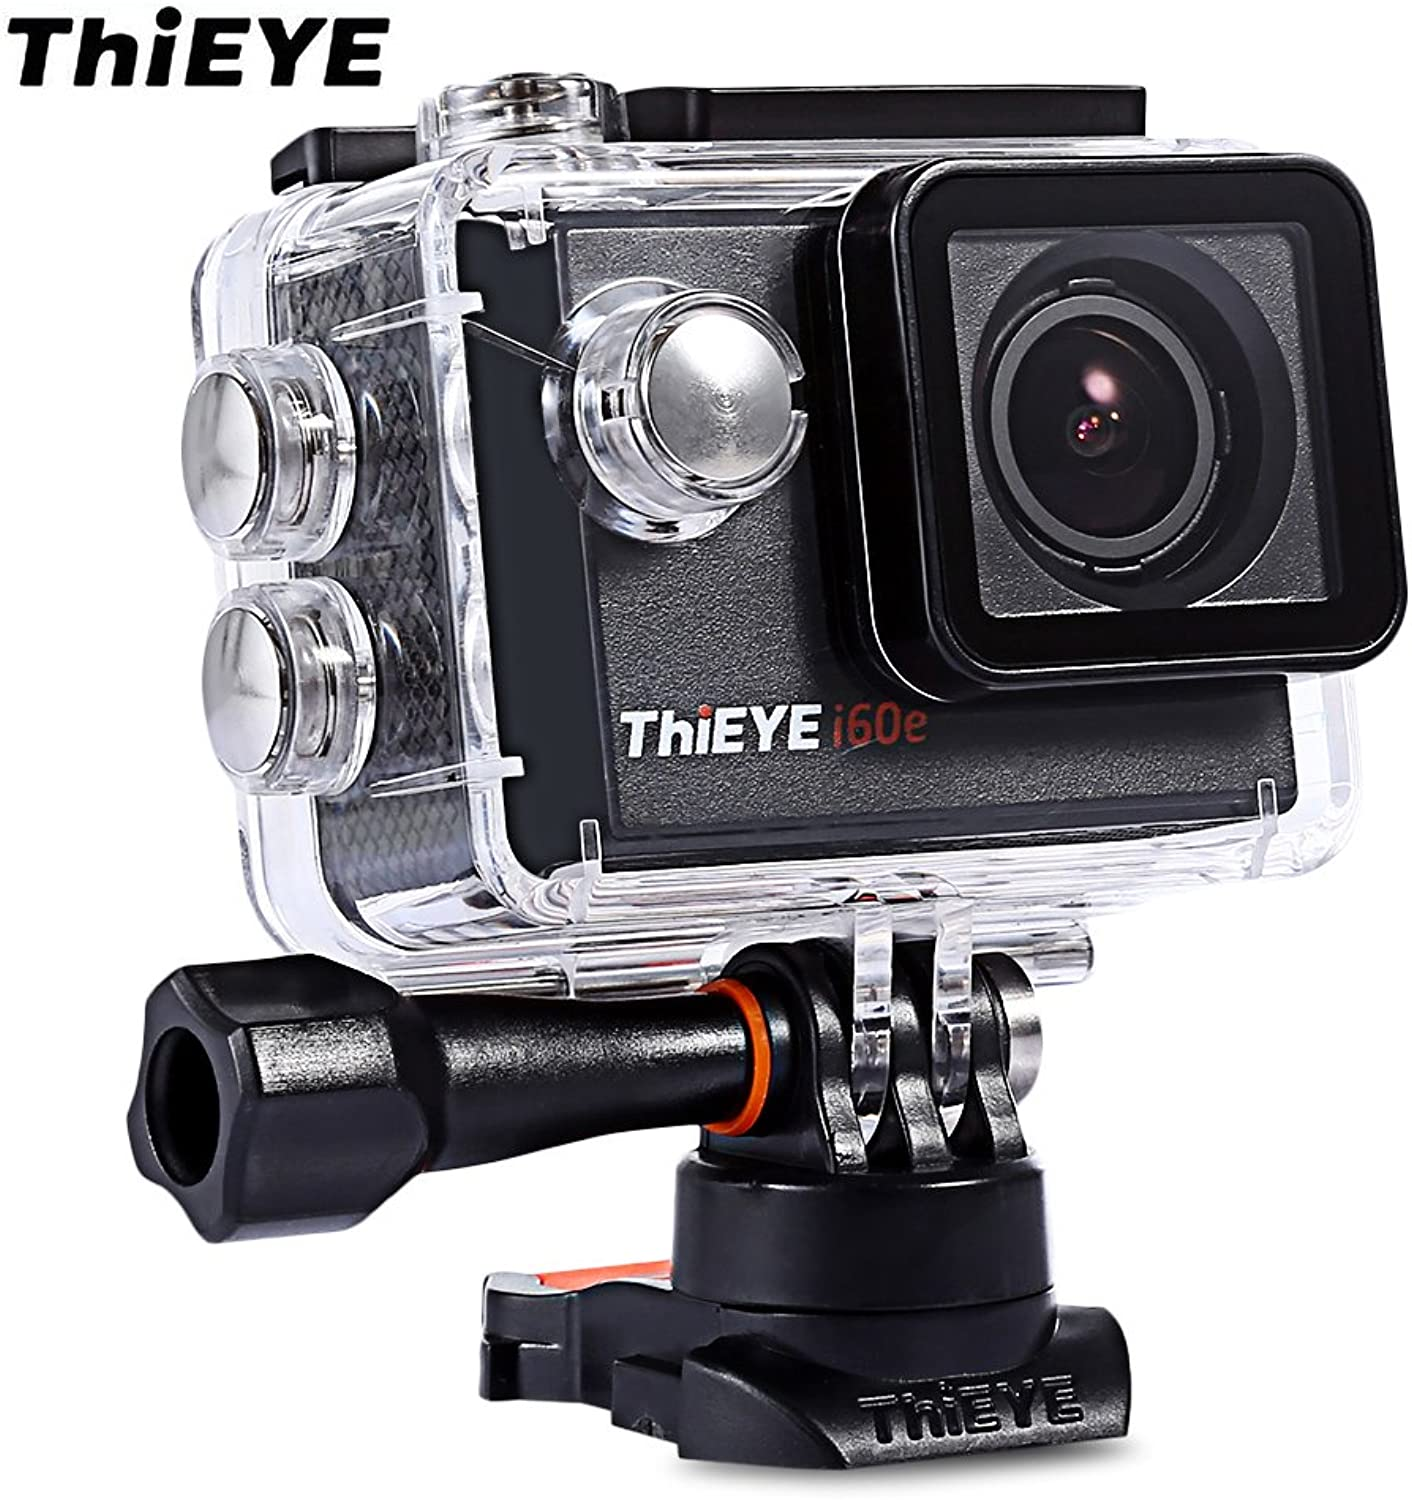 ThiEYE i60e Action Sport Camera WiFi 170 Degree Wide Angle Action Camera 4K Ultra HD Action Camera Sport Cam Loop Recording 2 inch Display Screen with Waterproof Case ,2PCS Batteries Included